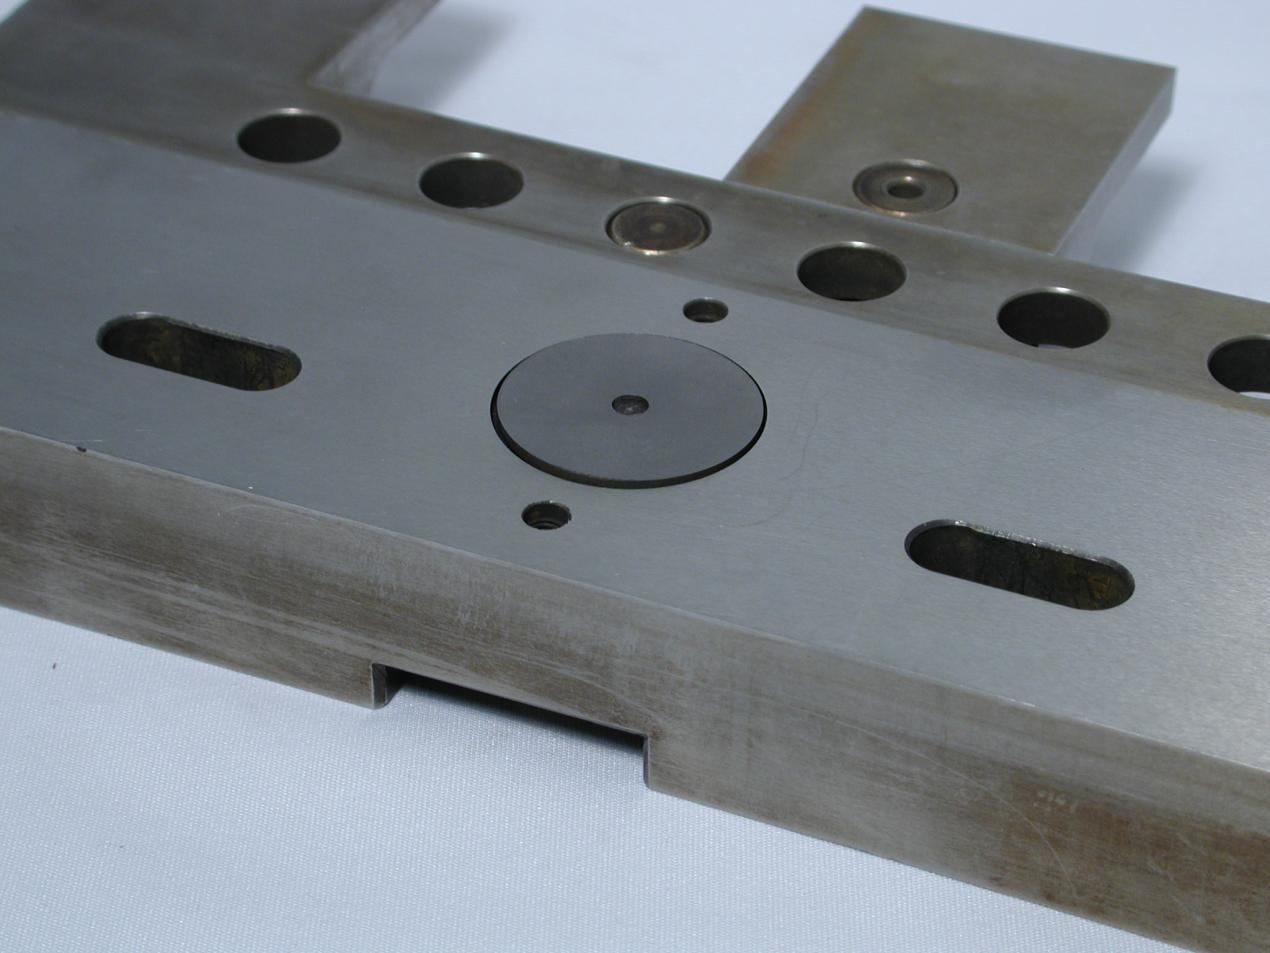 On track with WEDM tooling I made